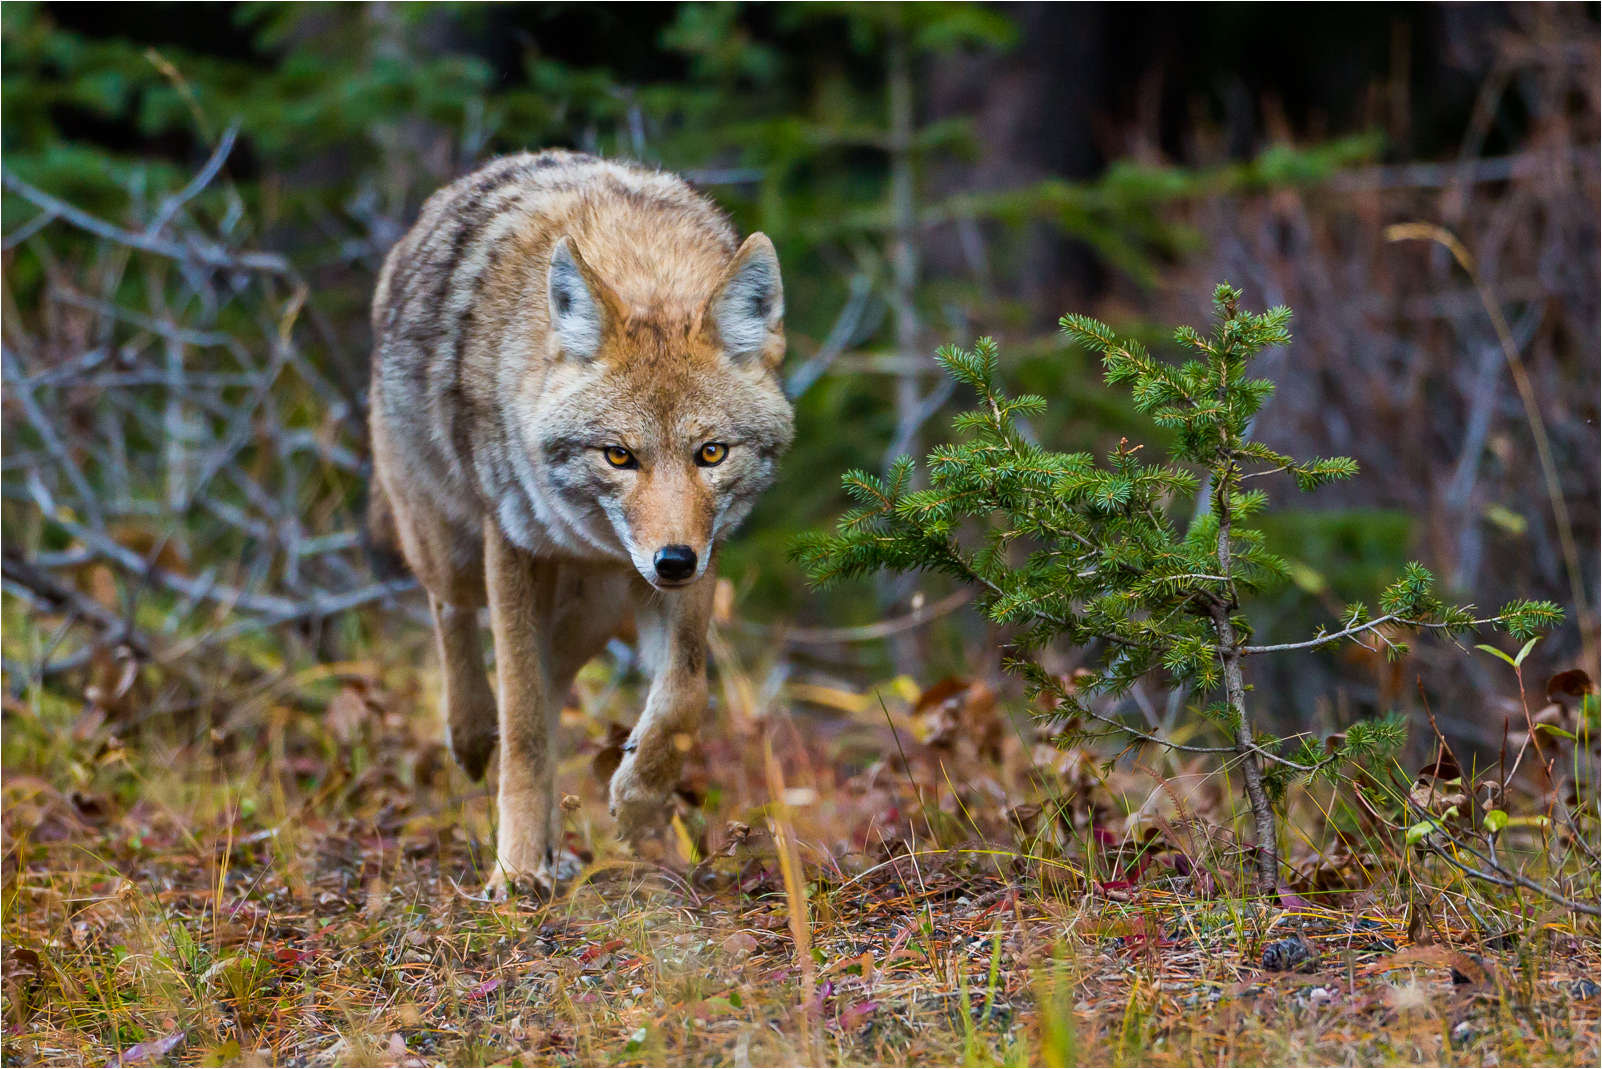 Photograph Coyote in Kananaskis by Christopher Martin on 500px